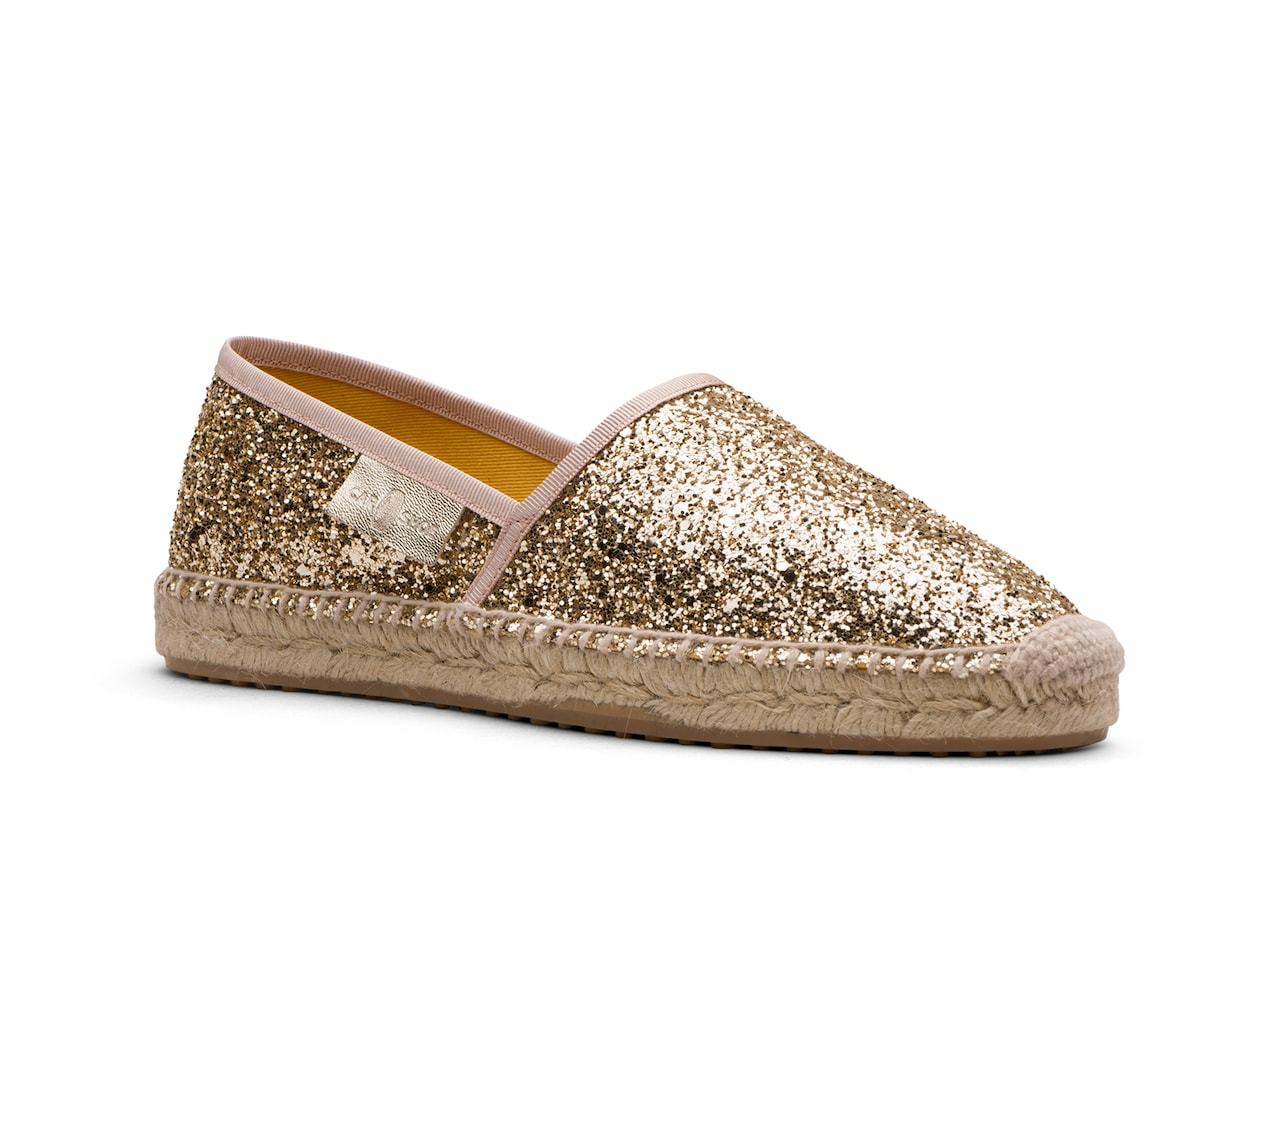 ESPADRILLAS SHOES GLITTER GOLD/SILVER